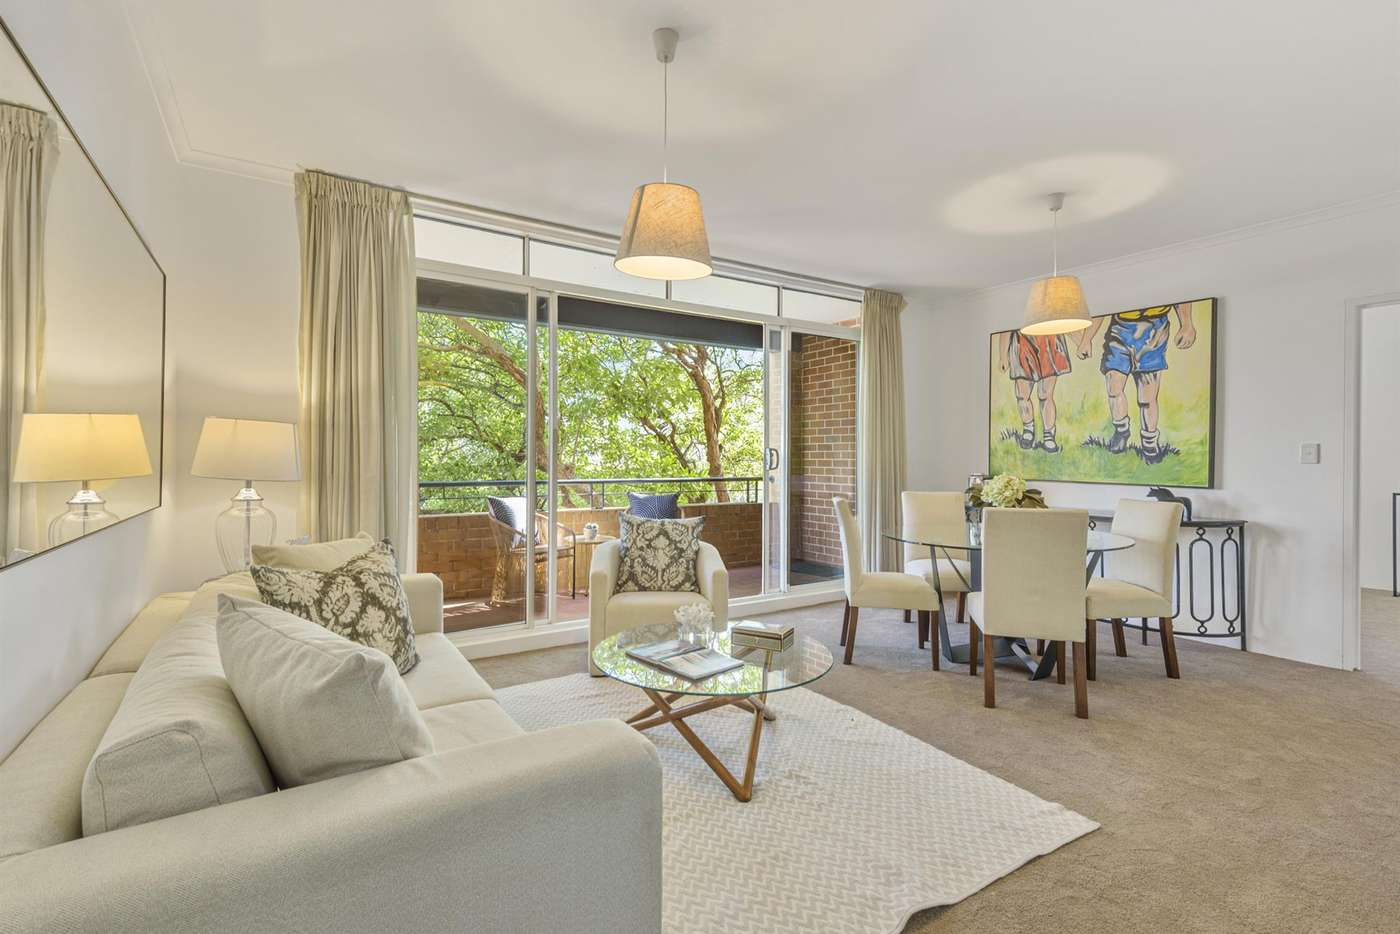 Main view of Homely apartment listing, 9/300 Riley Street, Surry Hills NSW 2010